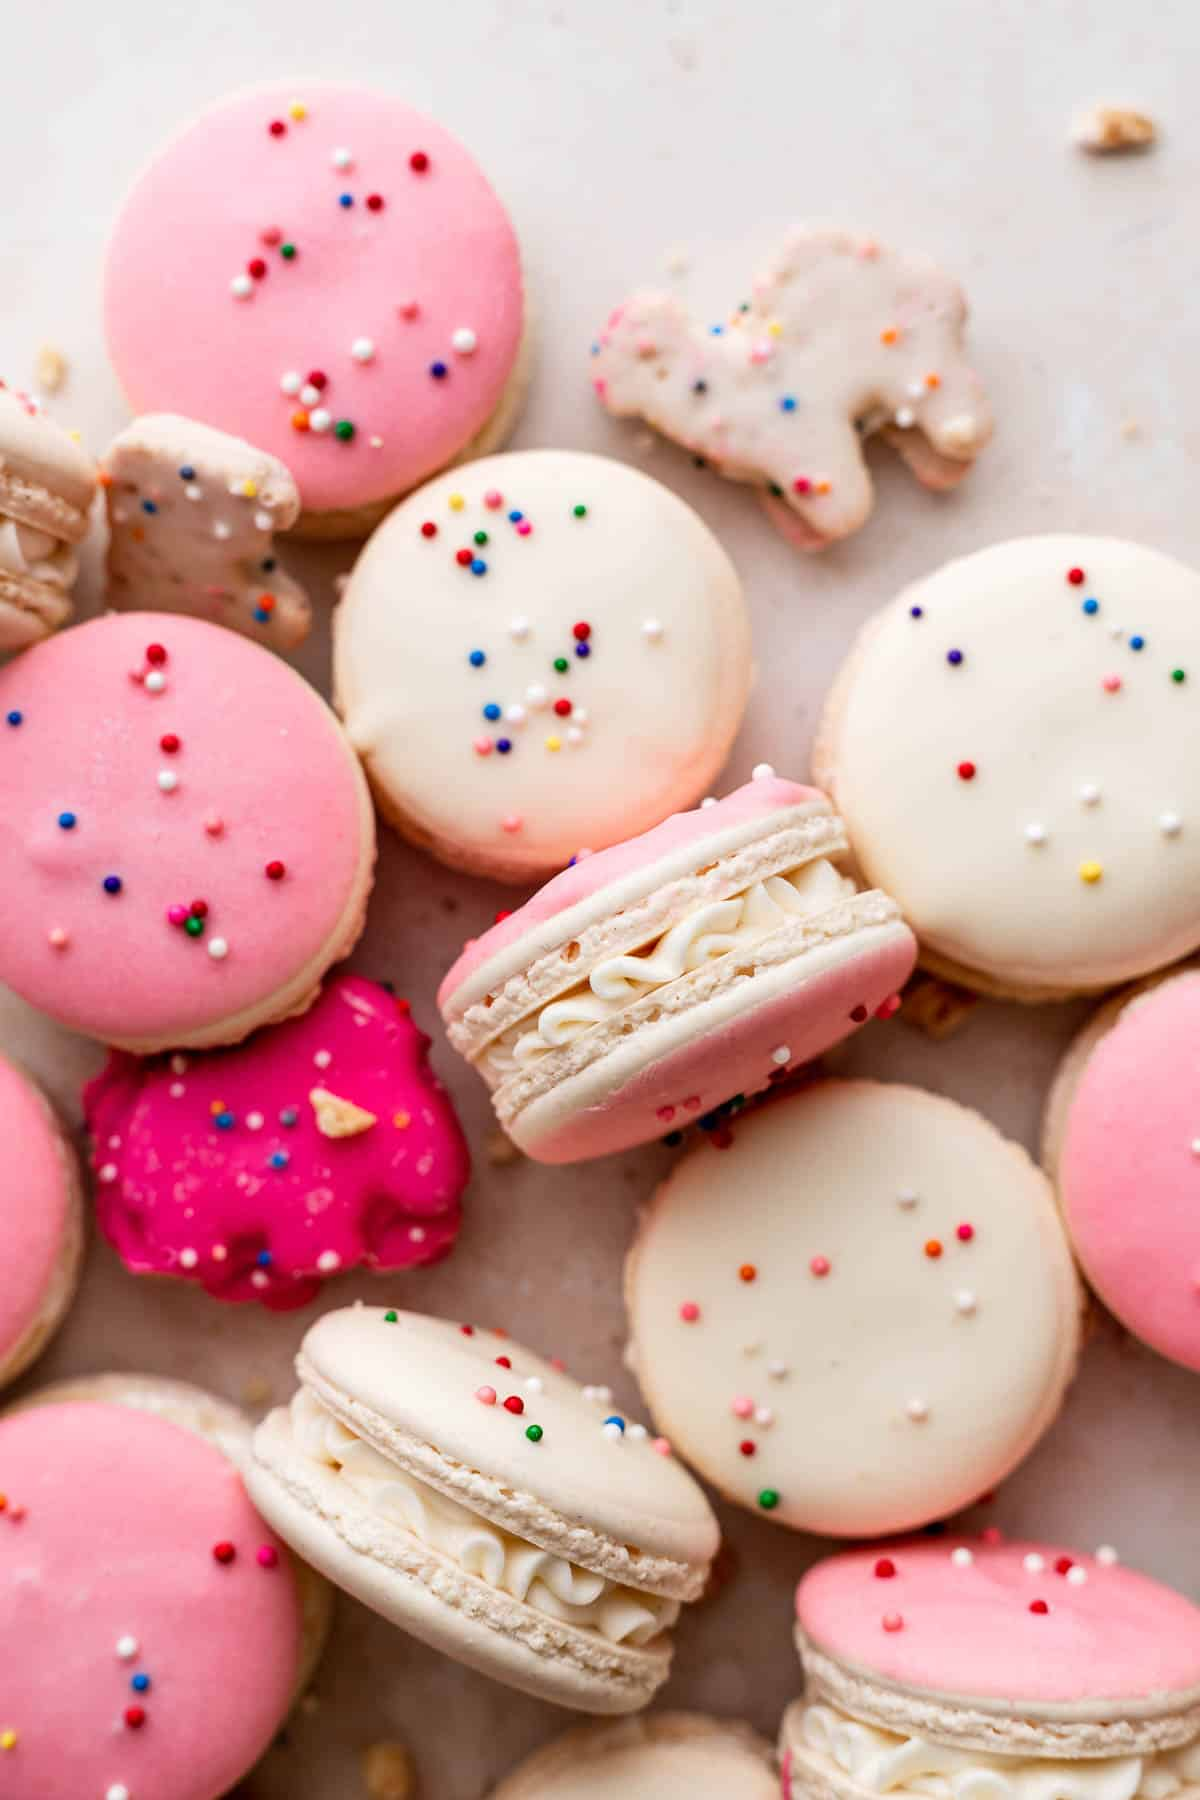 birthday cake macarons surrounded by animal cookies.